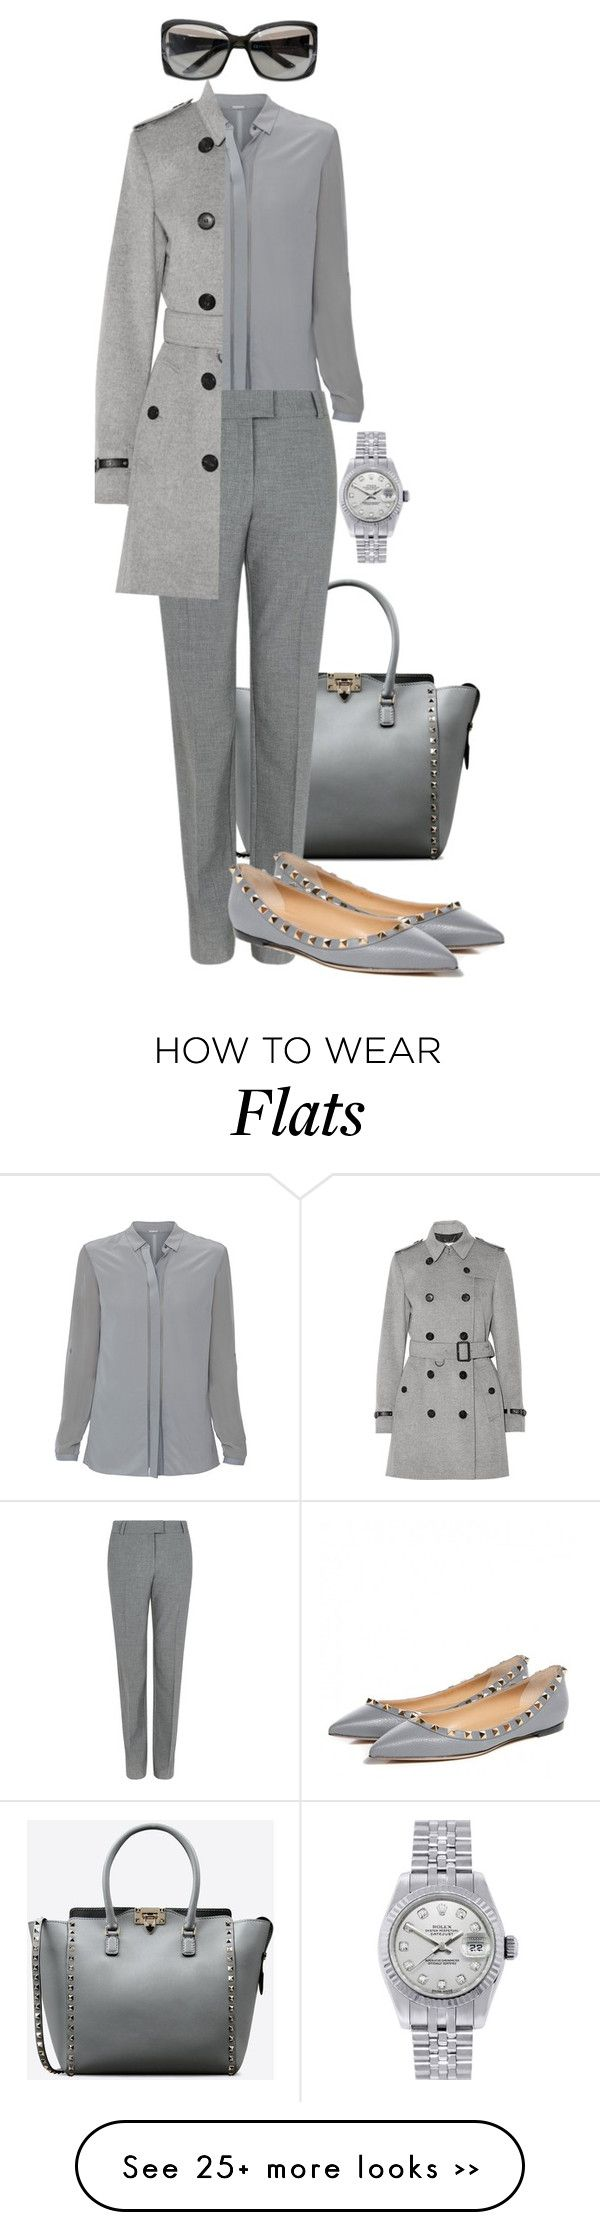 """Untitled #396"" by krisstinak on Polyvore featuring Valentino, Elie Tahari, Fenn Wright Manson, Burberry and Rolex"